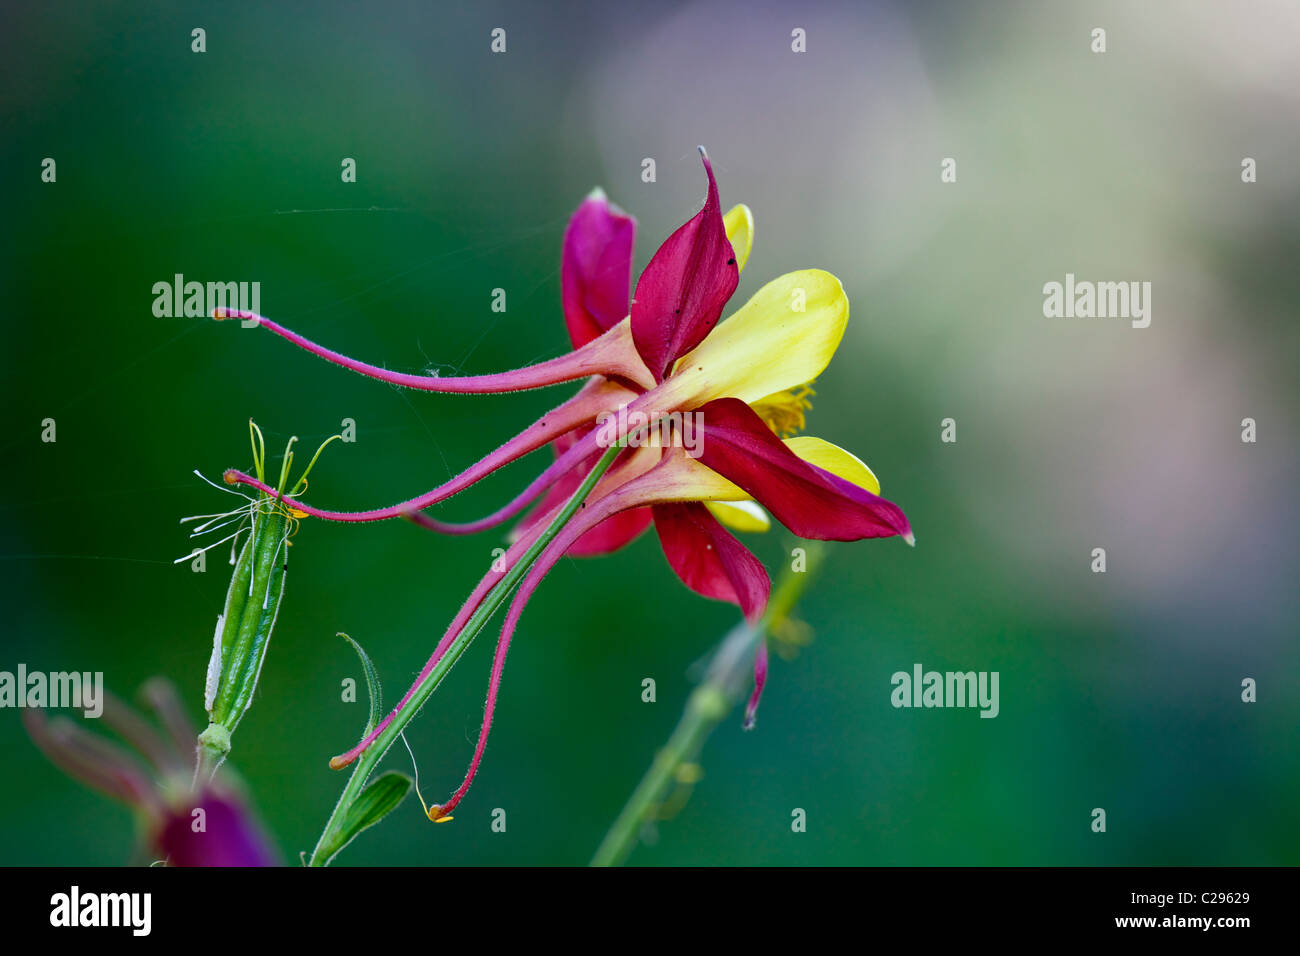 Red and yellow columbine flower stock photos red and yellow a red and yellow columbine flower stock image izmirmasajfo